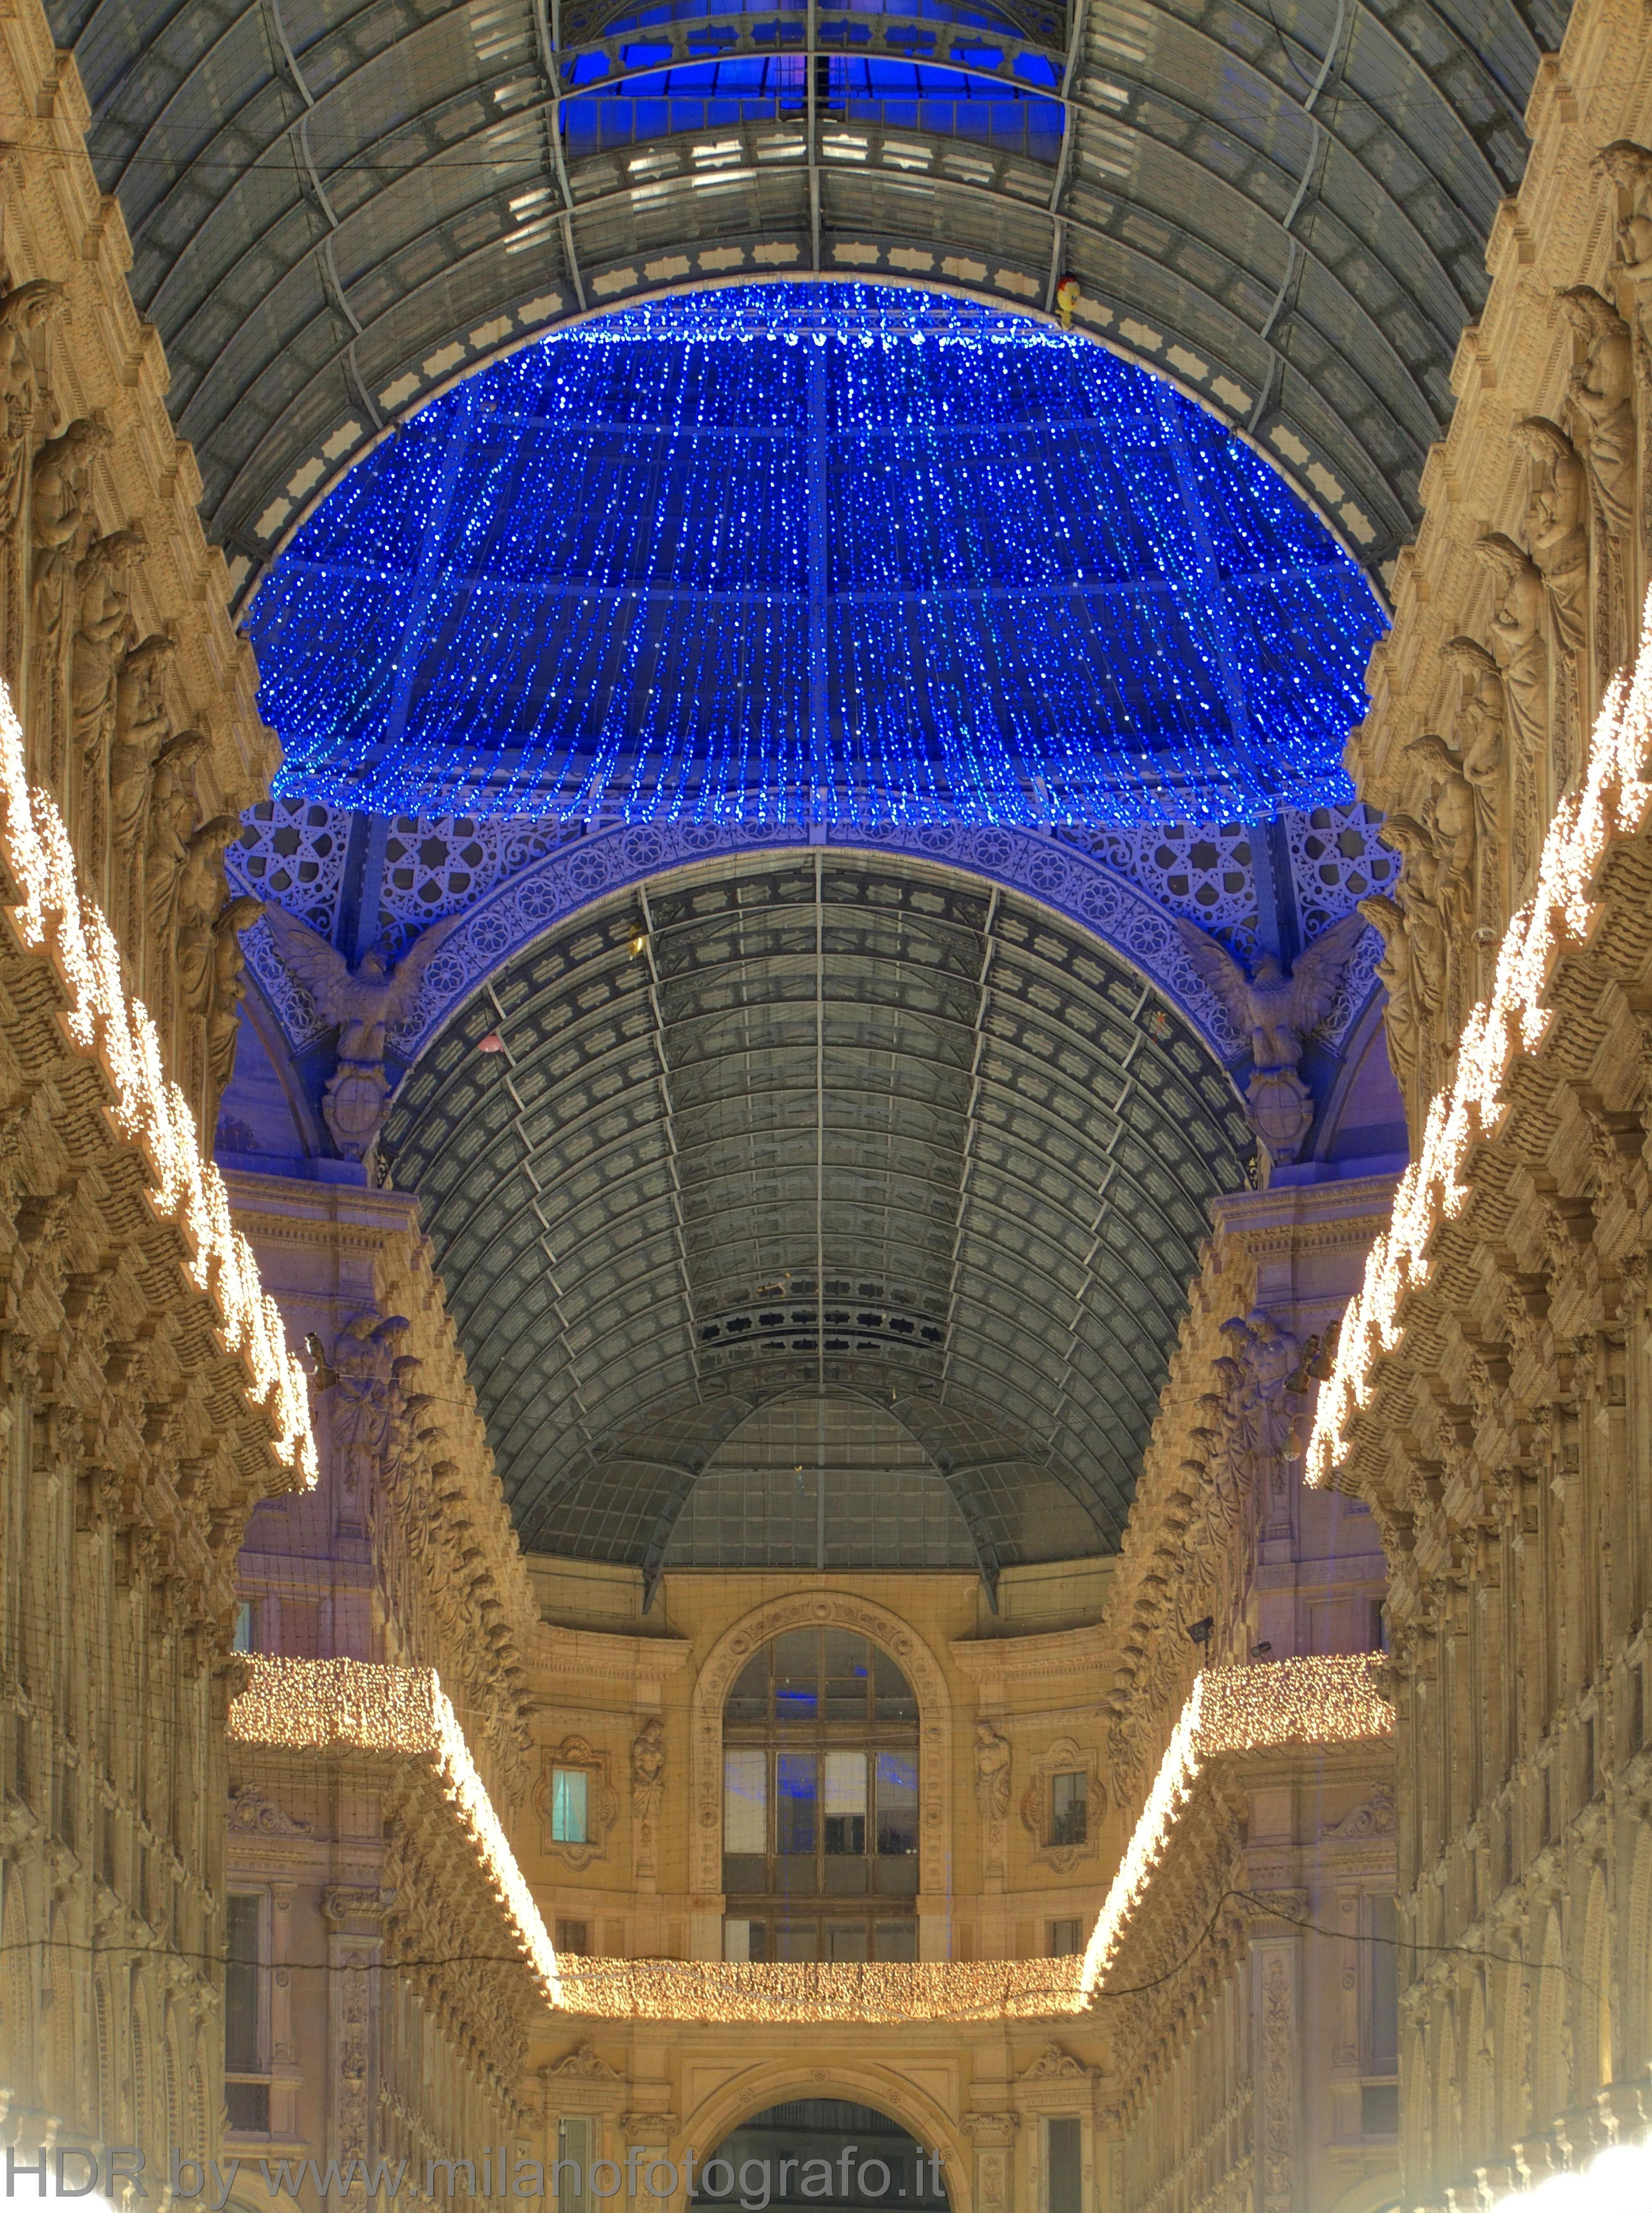 Milan (Italy): The dome of the Galleria decorated for Chrismas - Milan (Italy)